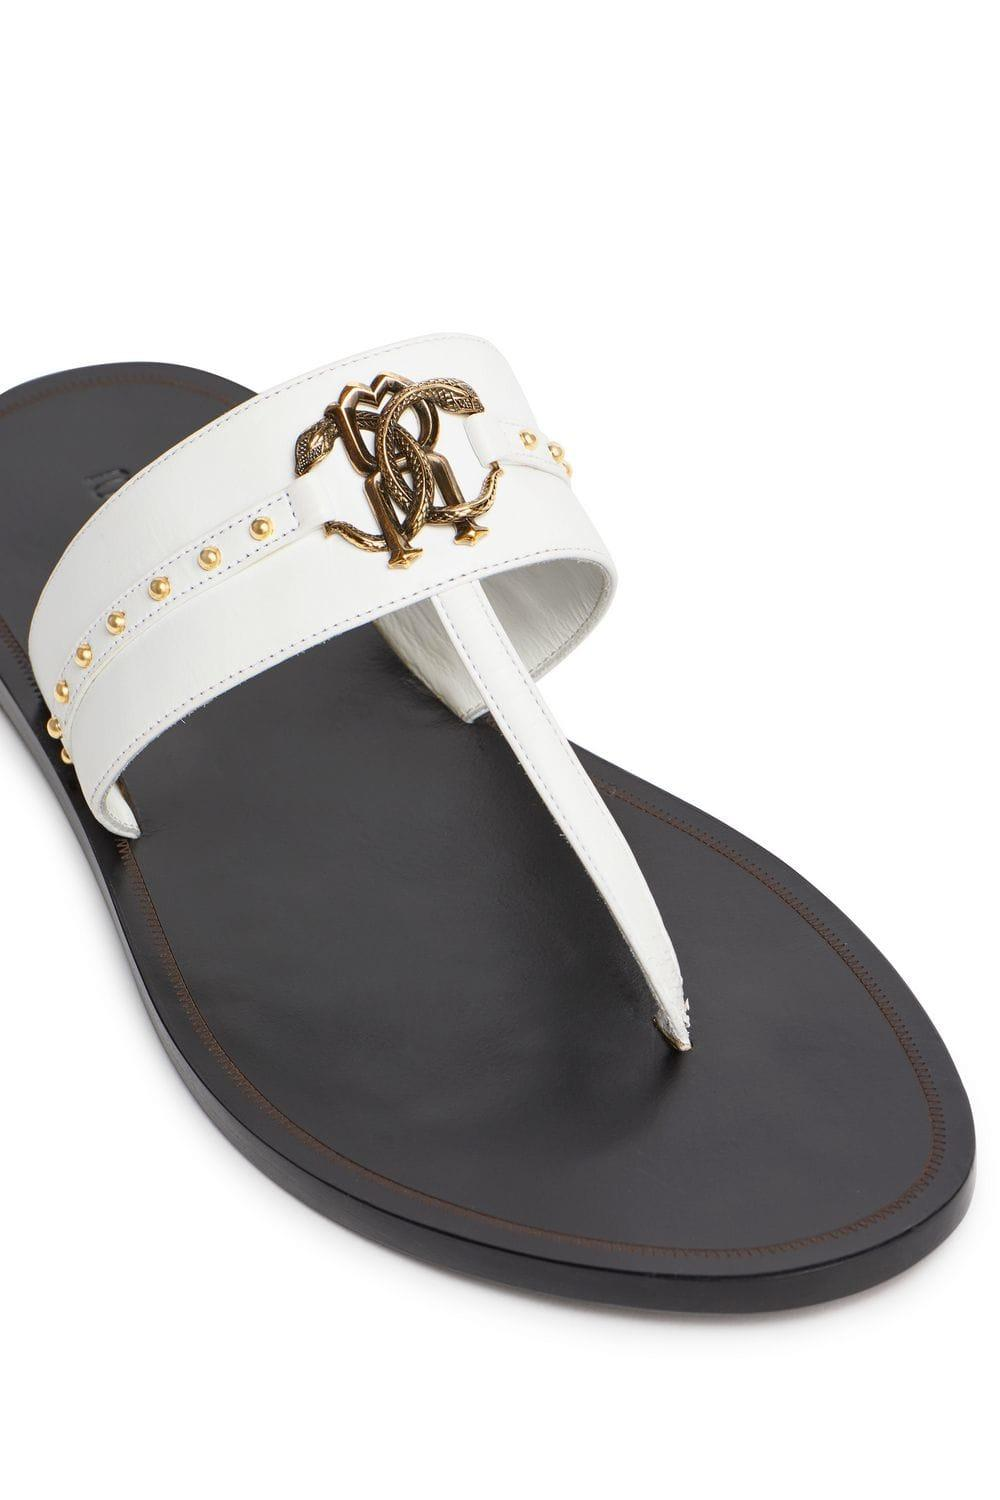 b30e32c67 Lyst - Roberto Cavalli Stud Embellished Leather Flat Sandals in White